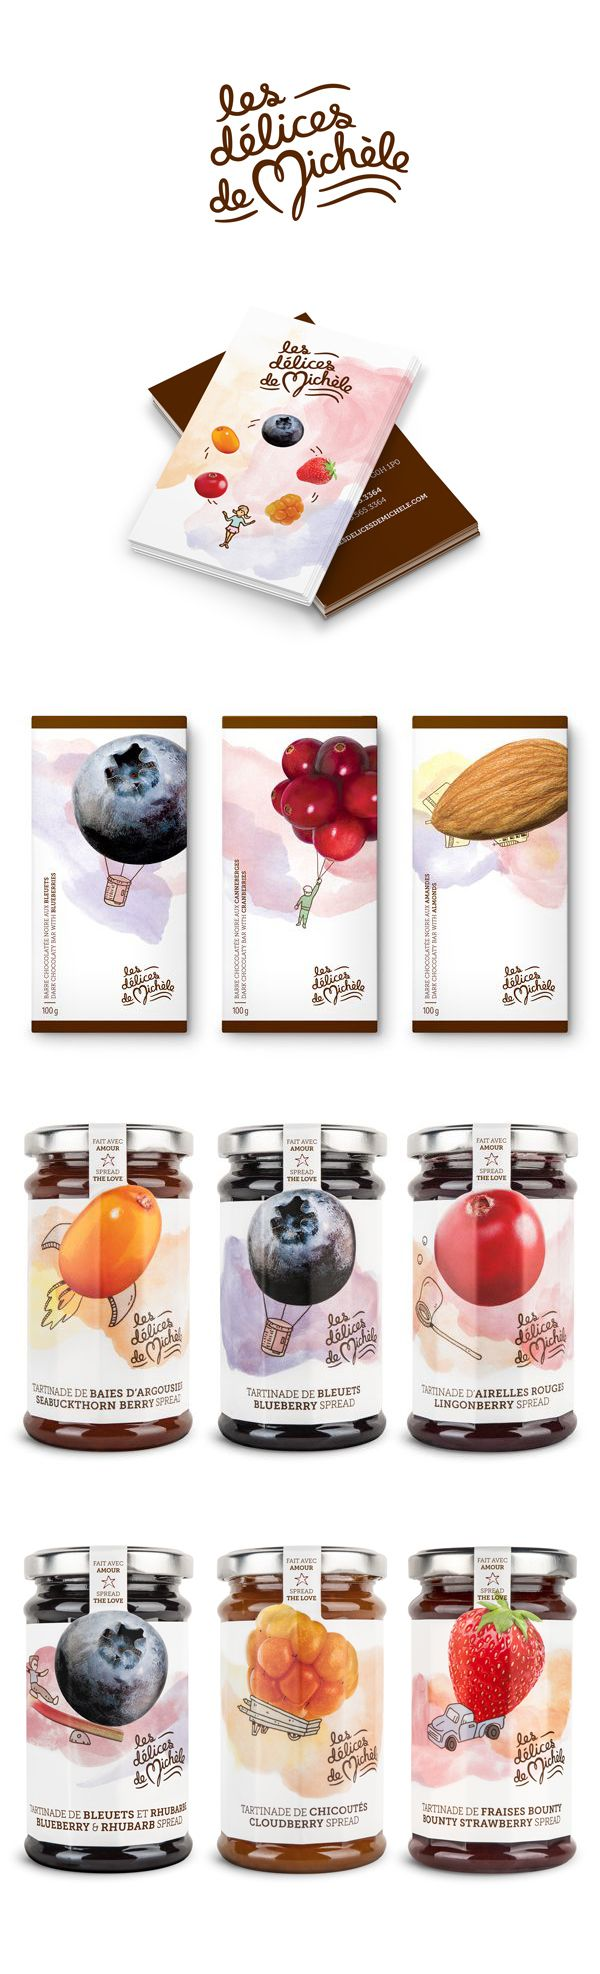 les délices #packaging #design frutal para mermeladas y chocolates ;-)